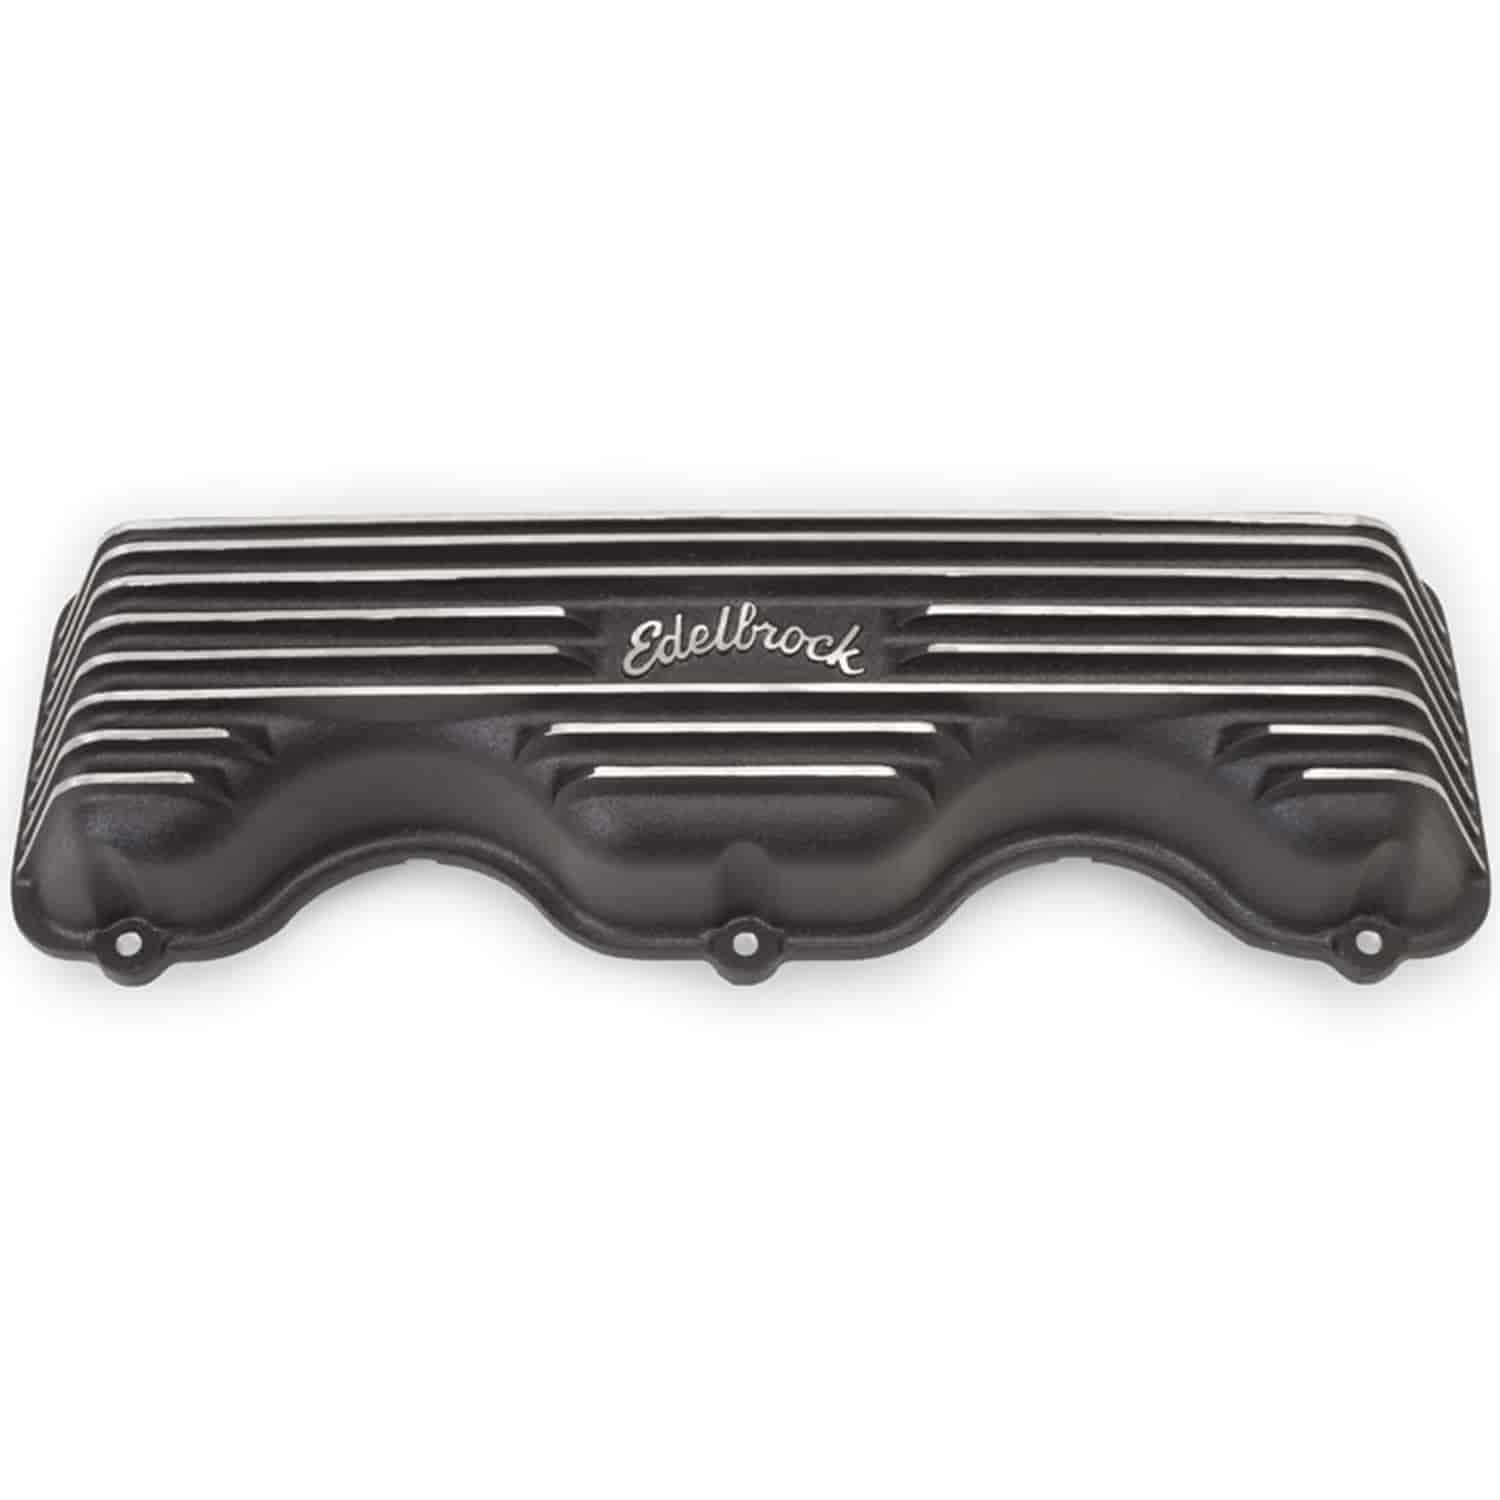 Edelbrock 41403 - Edelbrock Classic Series Valve Covers & Air Cleaners